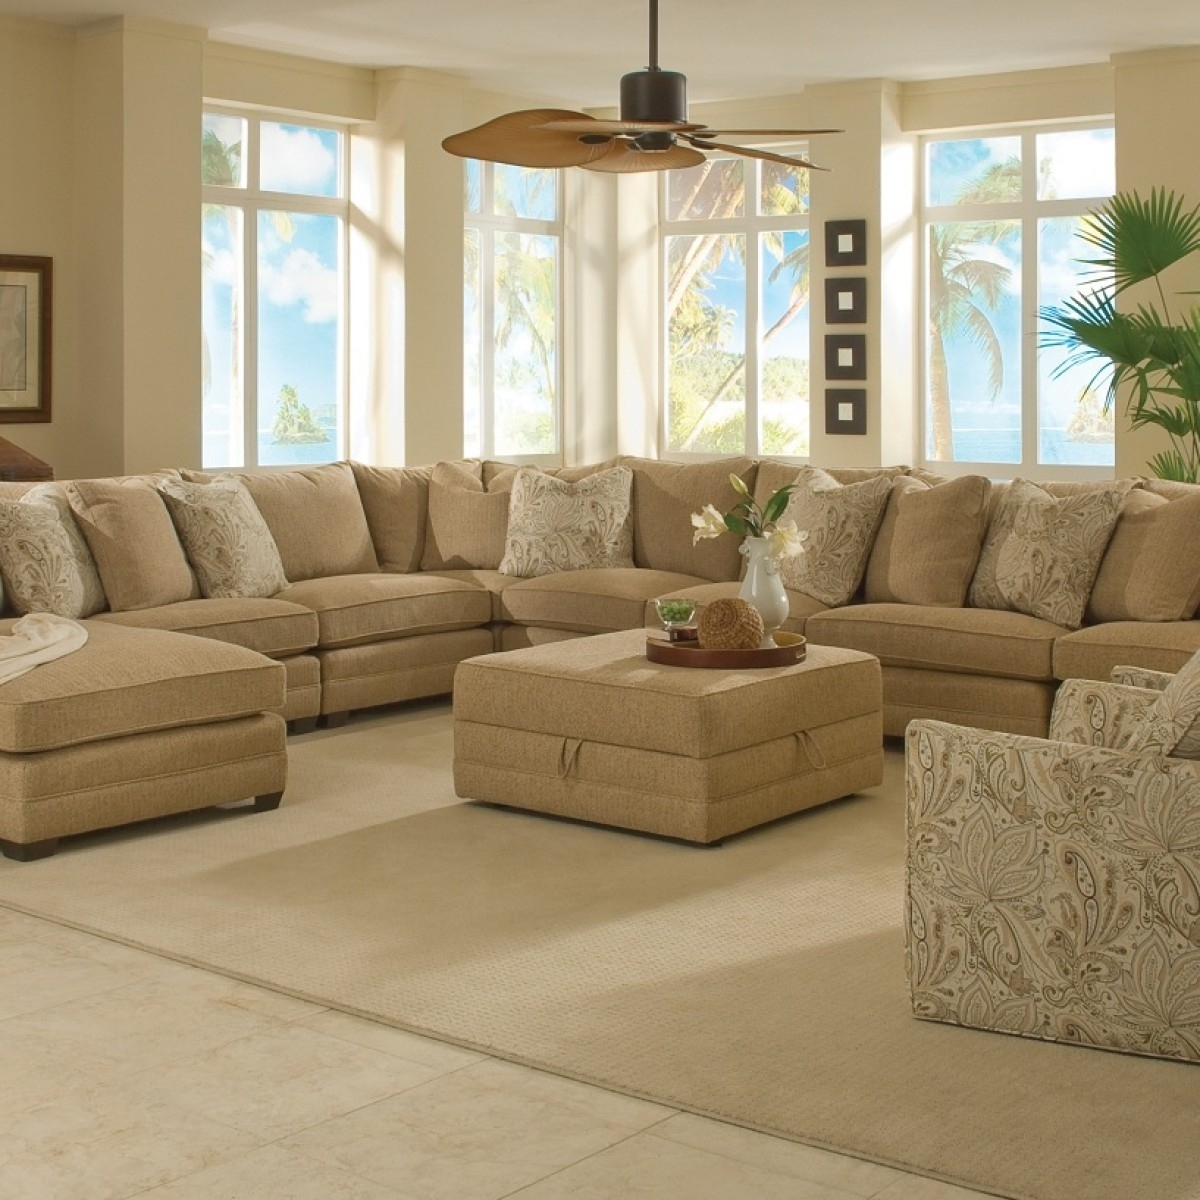 Factors To Consider Before Buying An Extra Large Sectional Sofa In Most Recently Released Sectionals With Oversized Ottoman (View 2 of 15)